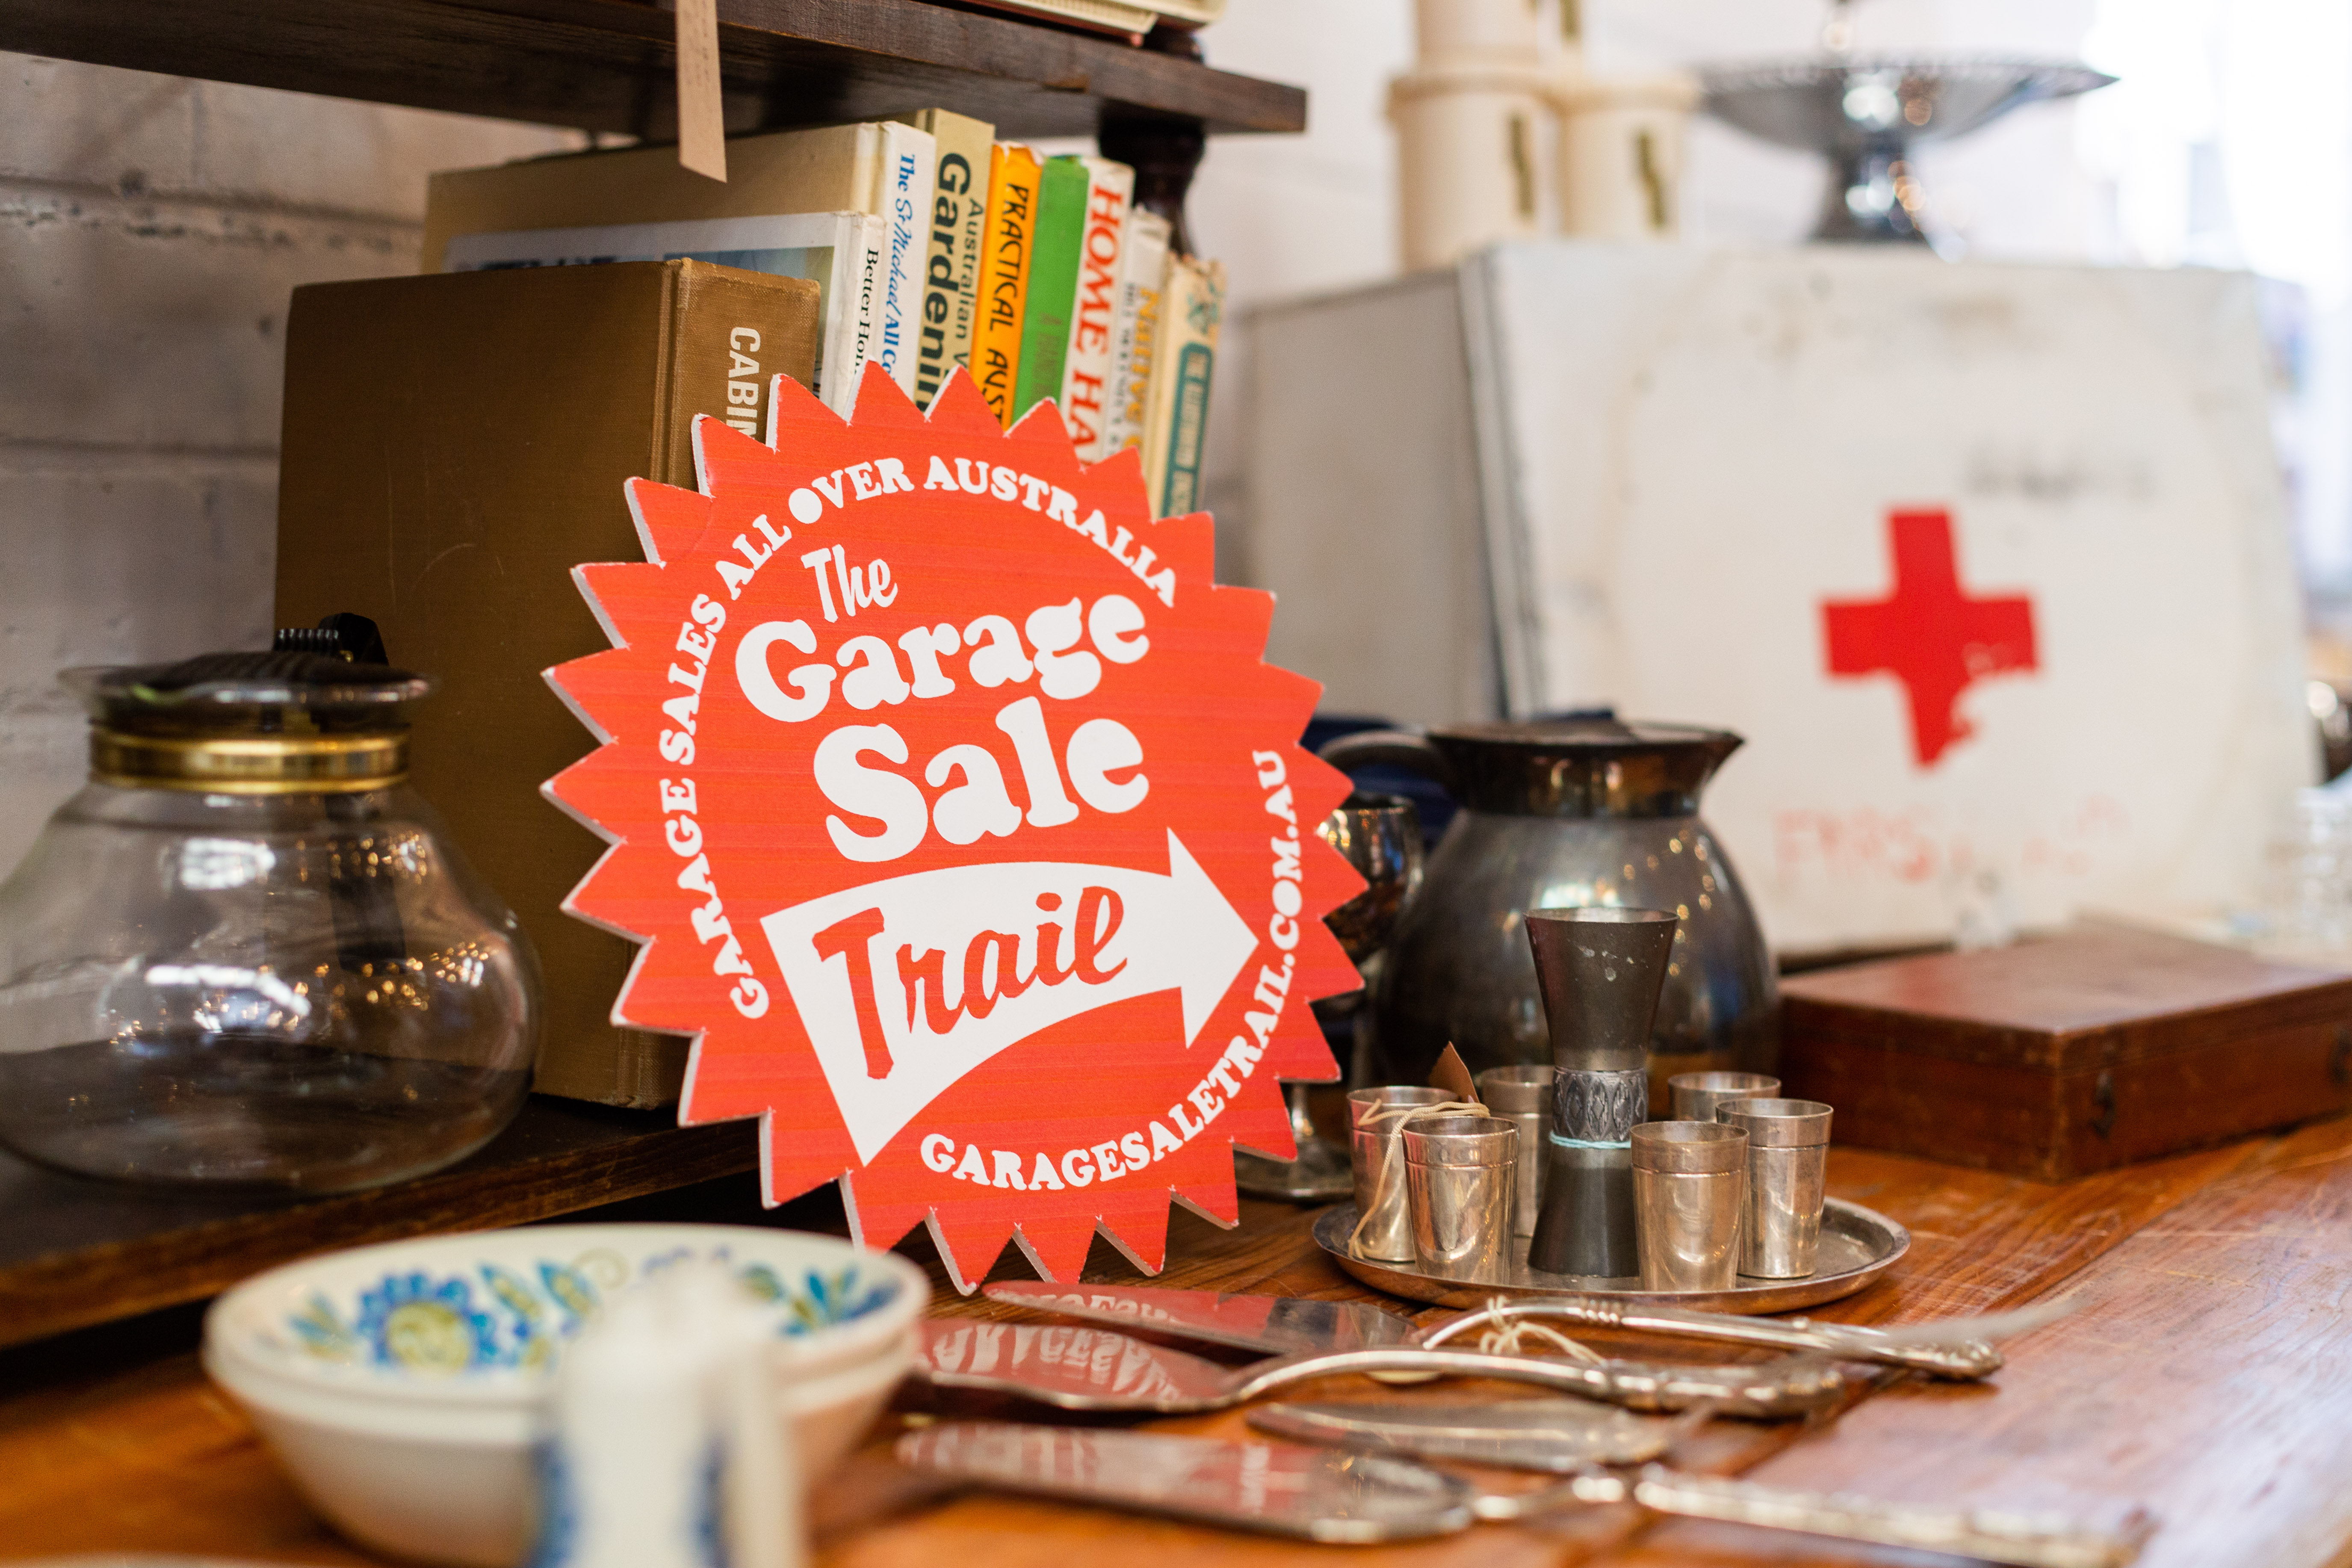 Garage sale trail will be raining bargains